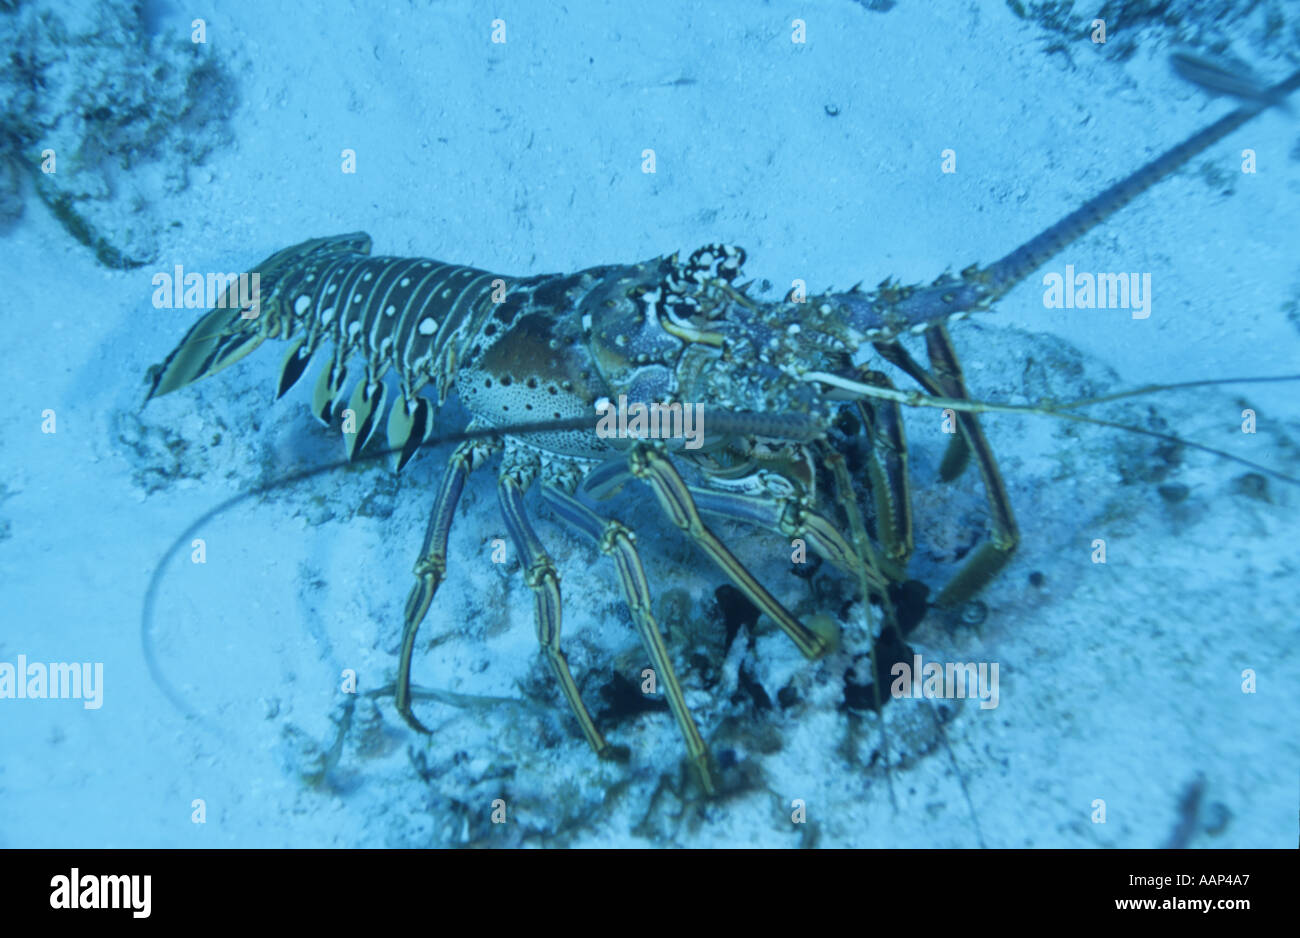 La Cucina Italiana Cozumel Lobster Cozumel Immagini And Lobster Cozumel Fotos Stock Alamy